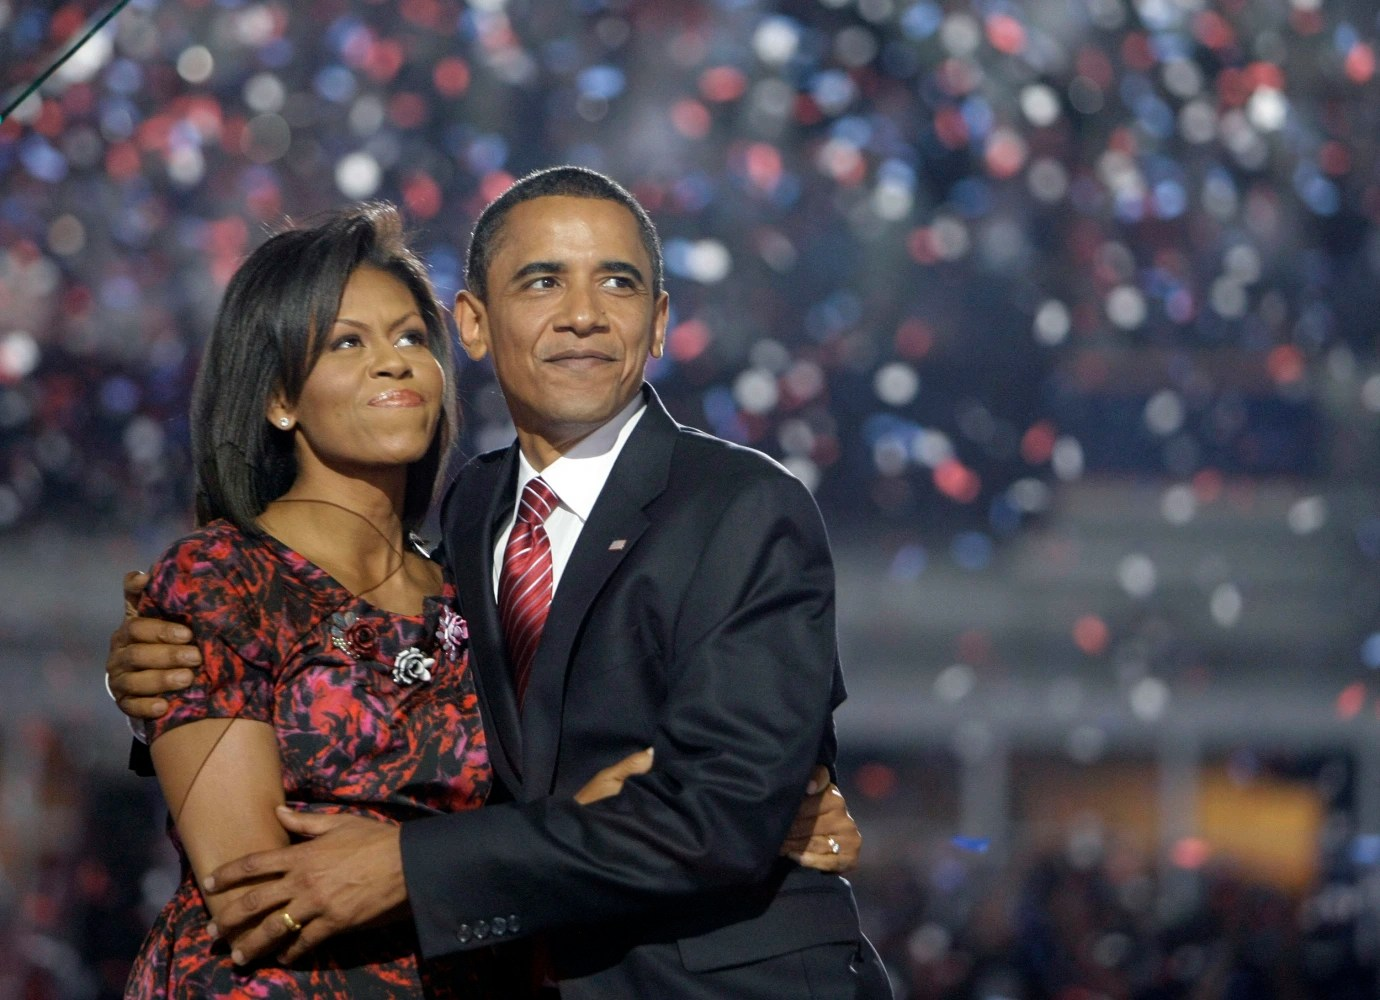 Michelle Obama The Historic Legacy Of The Nation S First Black First Lady